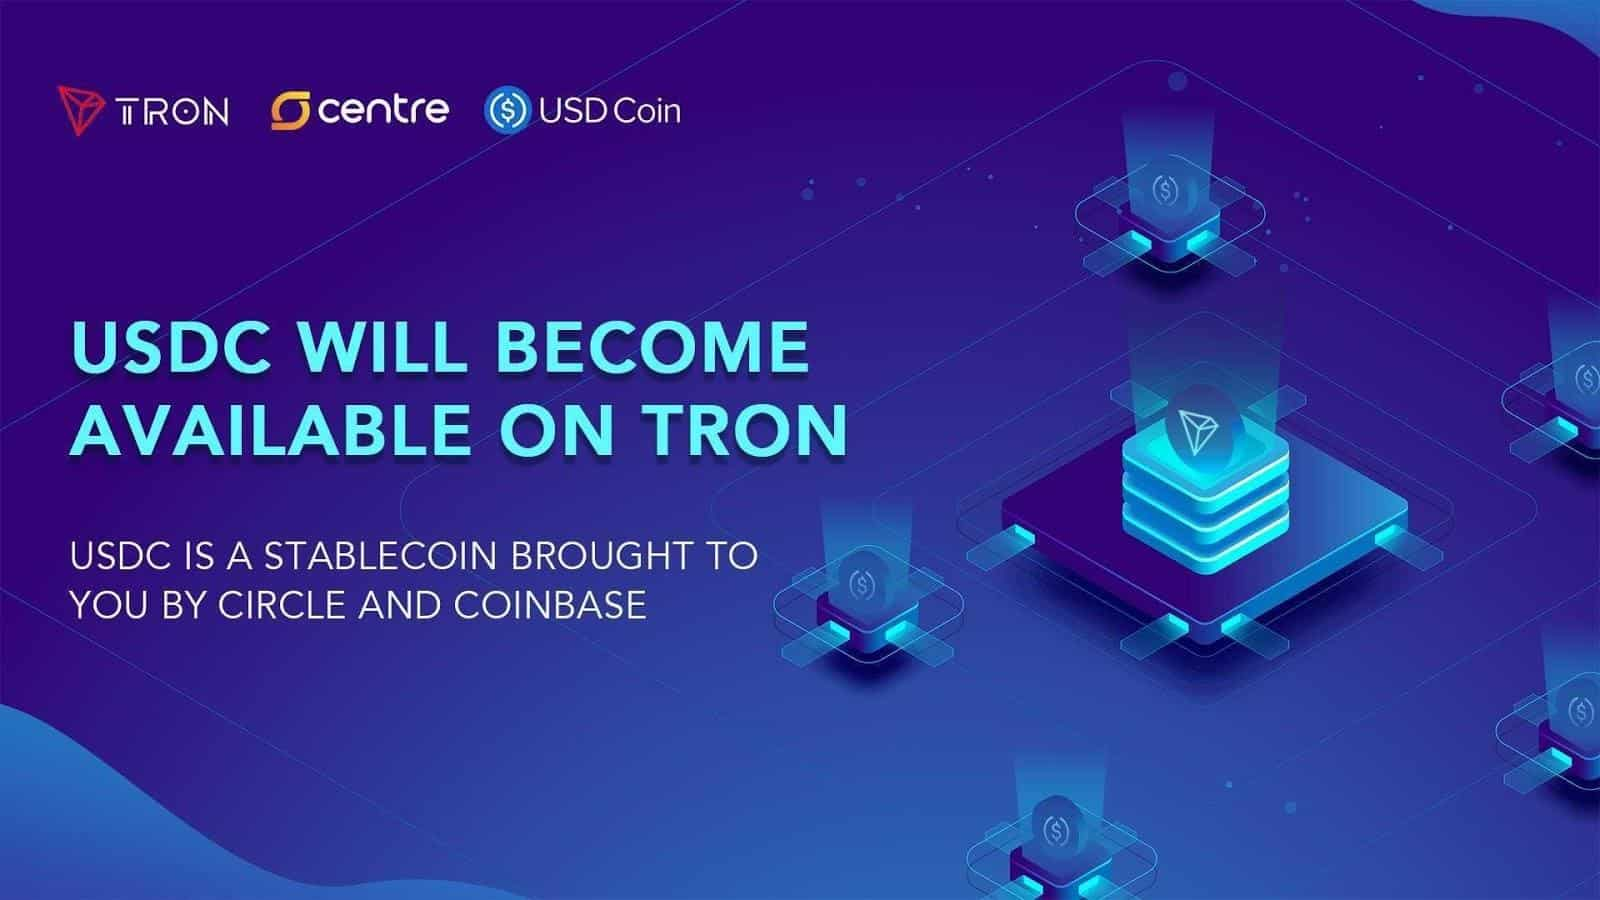 Stablecoin USDC Expands to the TRON Ecosystem Ushering in a New Round Of Development Opportunities